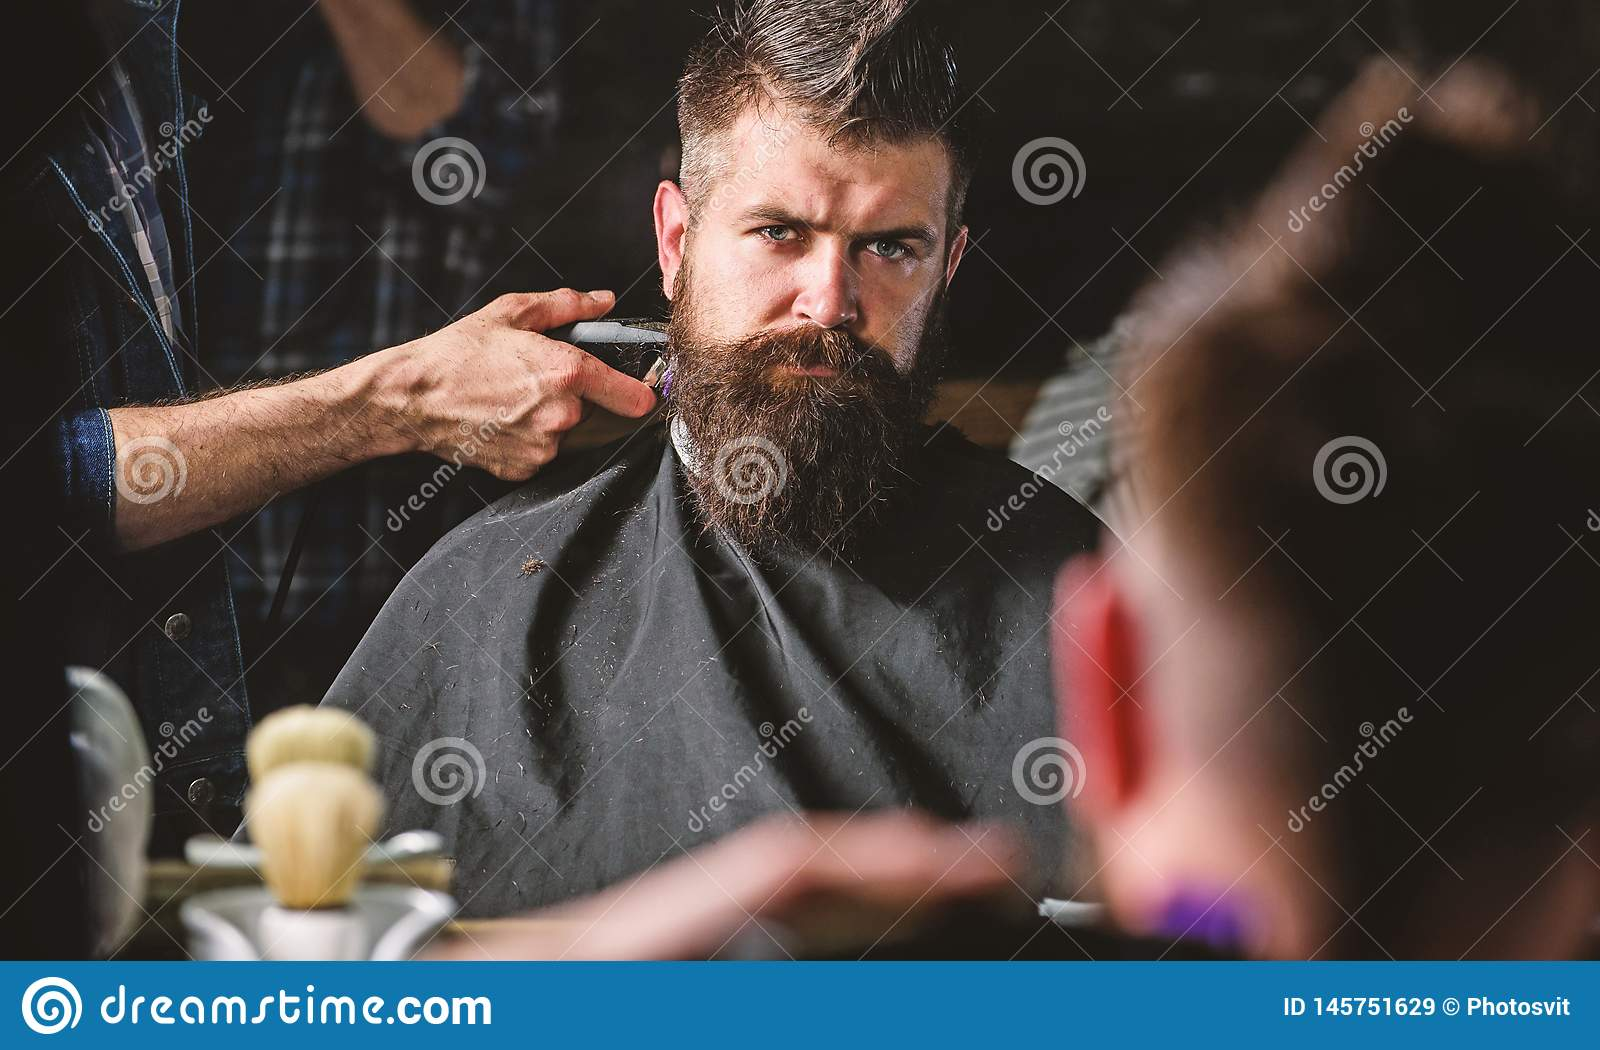 Reflexion of barbers hand with hair clipper trimming nape of client. Hipster bearded client getting hairstyle in front